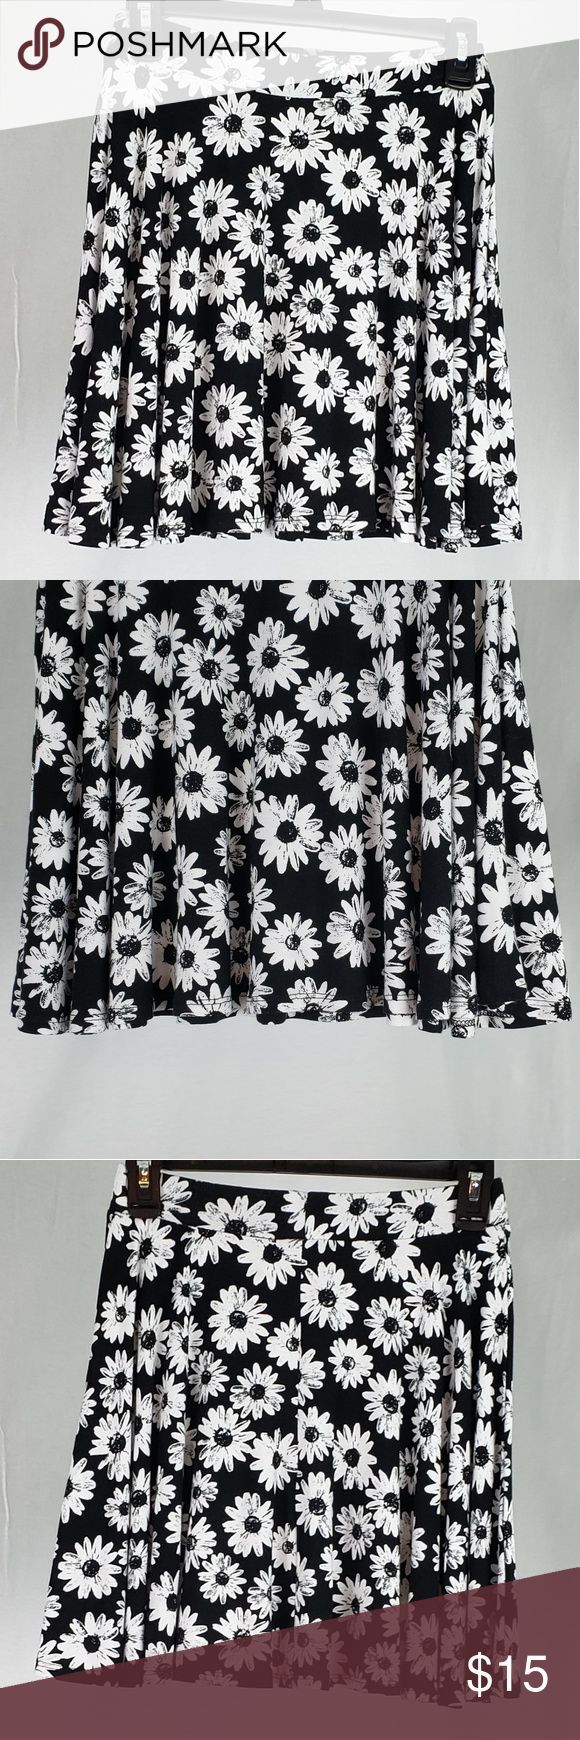 Authentic American Heritage Skater Skirt Black with White Daisy Flowers  Waist -... 3